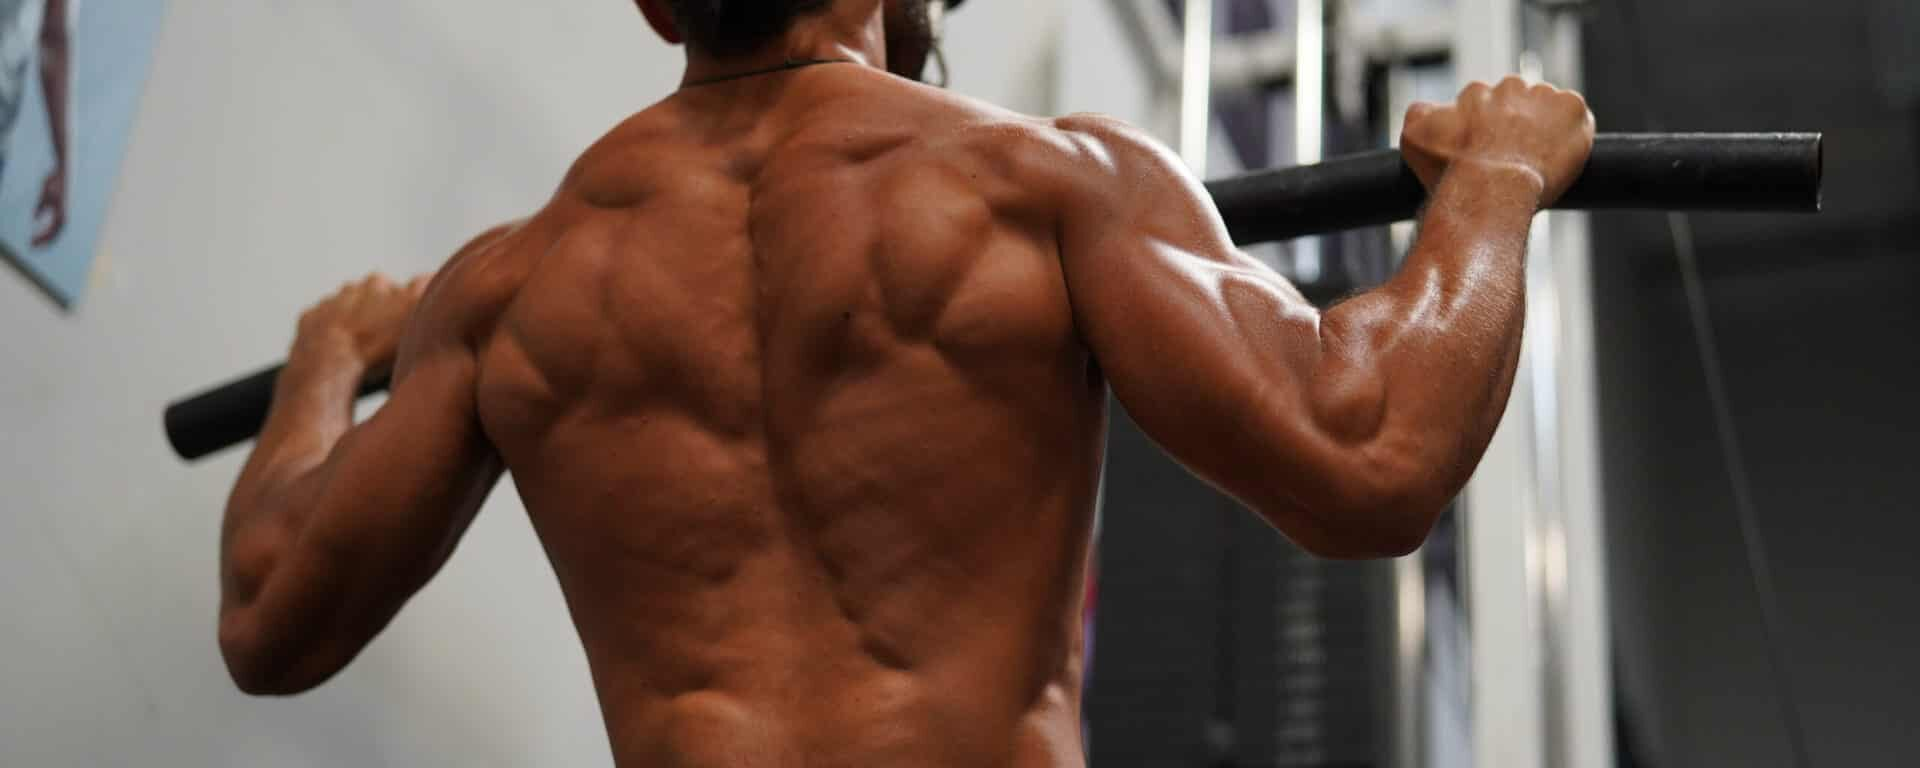 The Posterior Chain and Why It's Important to Build Your Whole Backside